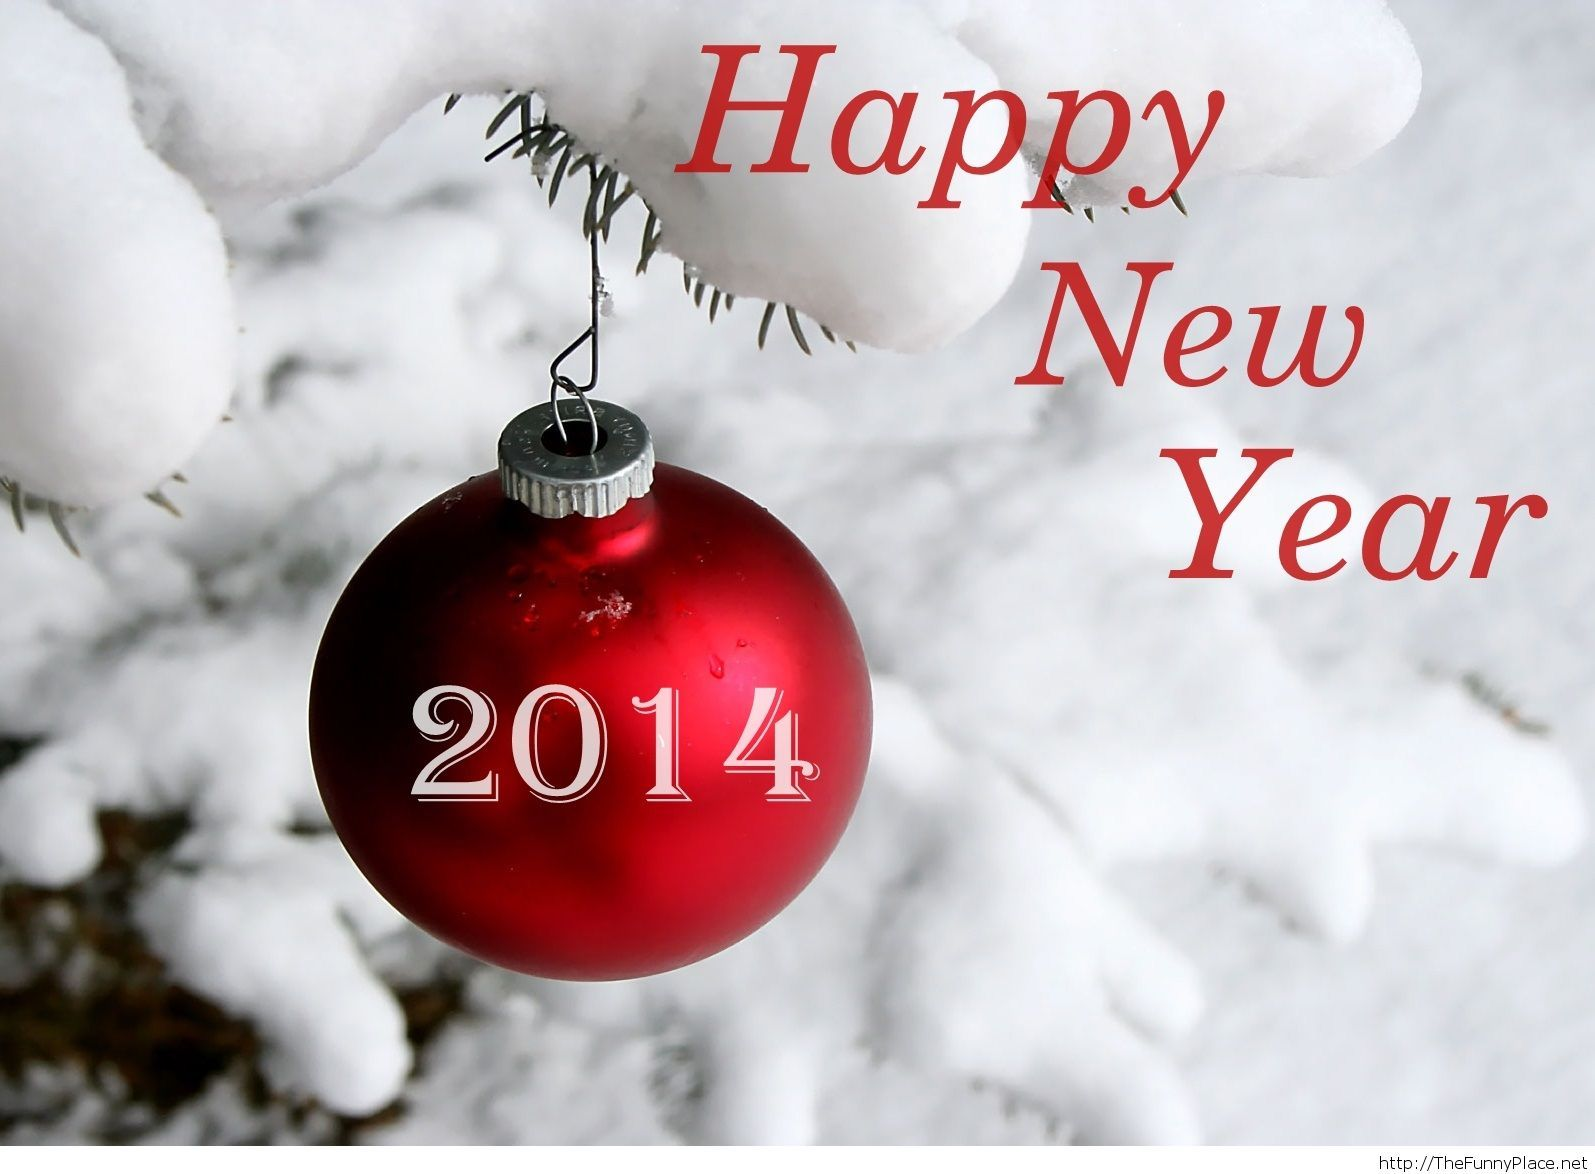 Happy New Year 2014 wallpaper awesome1 Funny